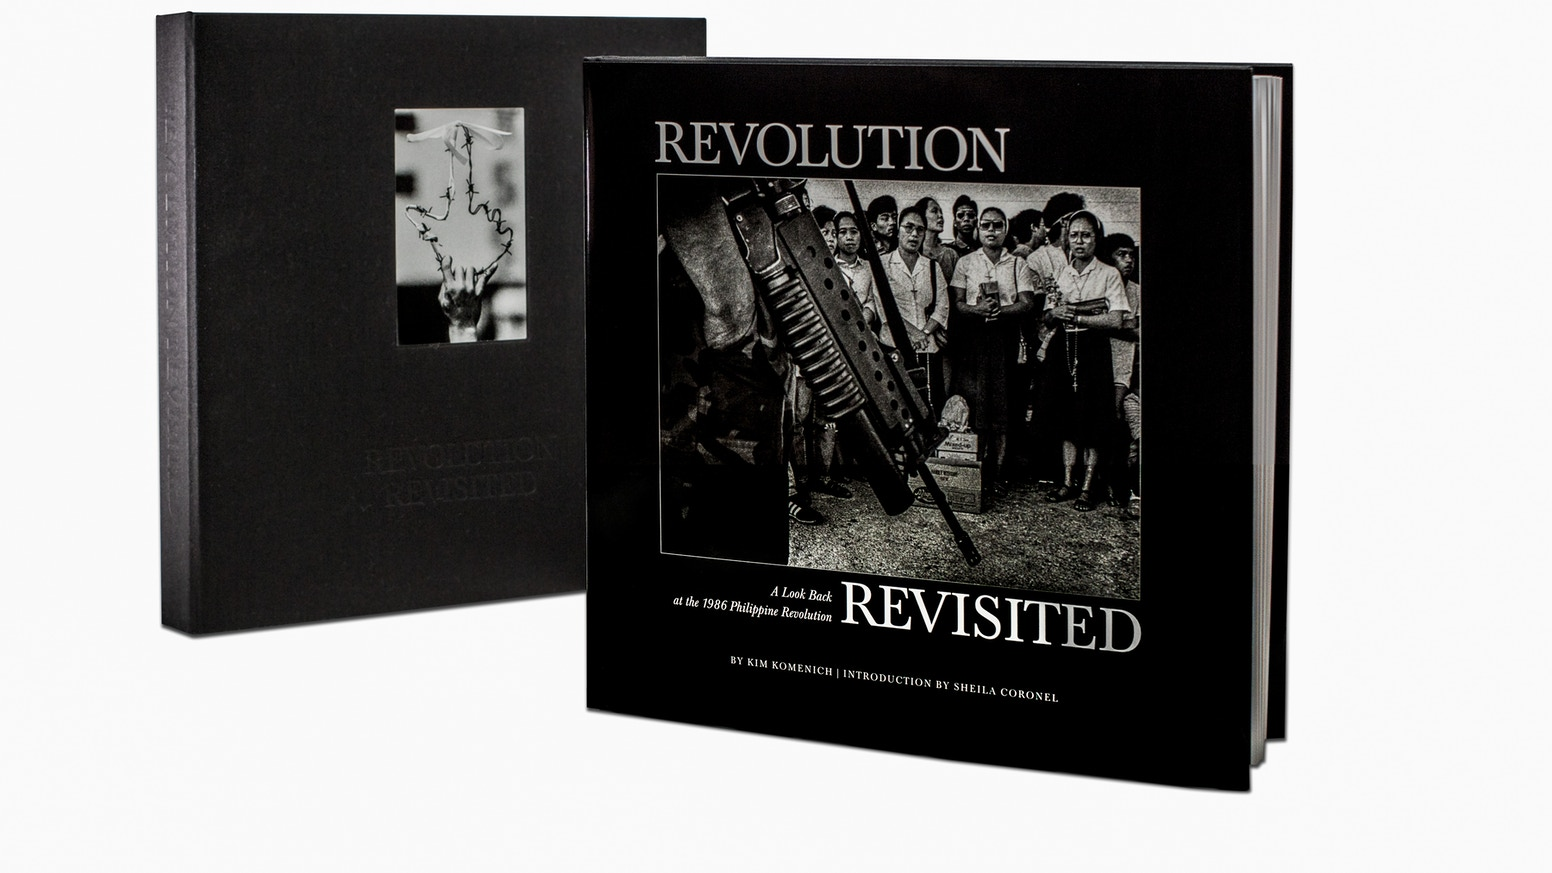 HOLIDAY DISCOUNT!! SEE UPDATE #18.      Thank you for helping me make the goal for the Revolution Revisited book! If you or your friends would like to purchase more books or prints, please click below to visit the RevRev Store. Maraming Salamat! KimK